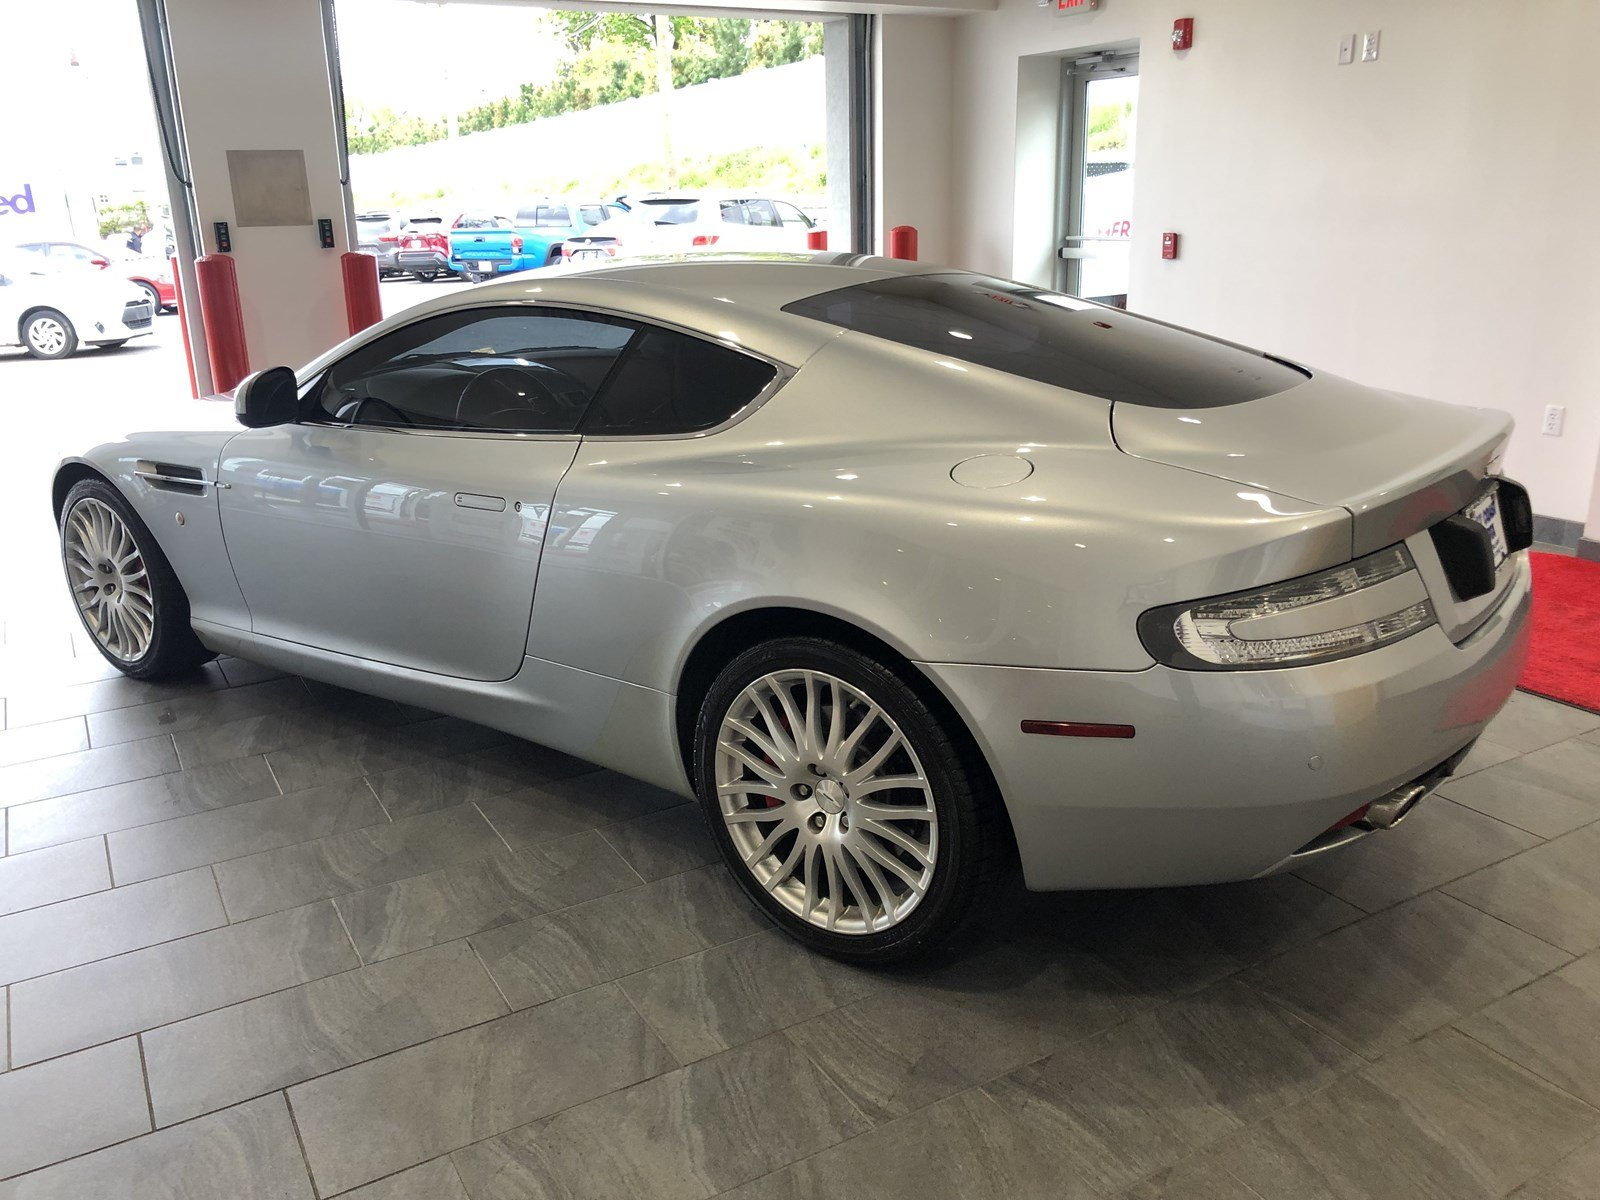 Pre Owned 2010 Aston Martin DB9 5 9L V 12 2DR COUPE 2dr Car in Wood Ridge AGA